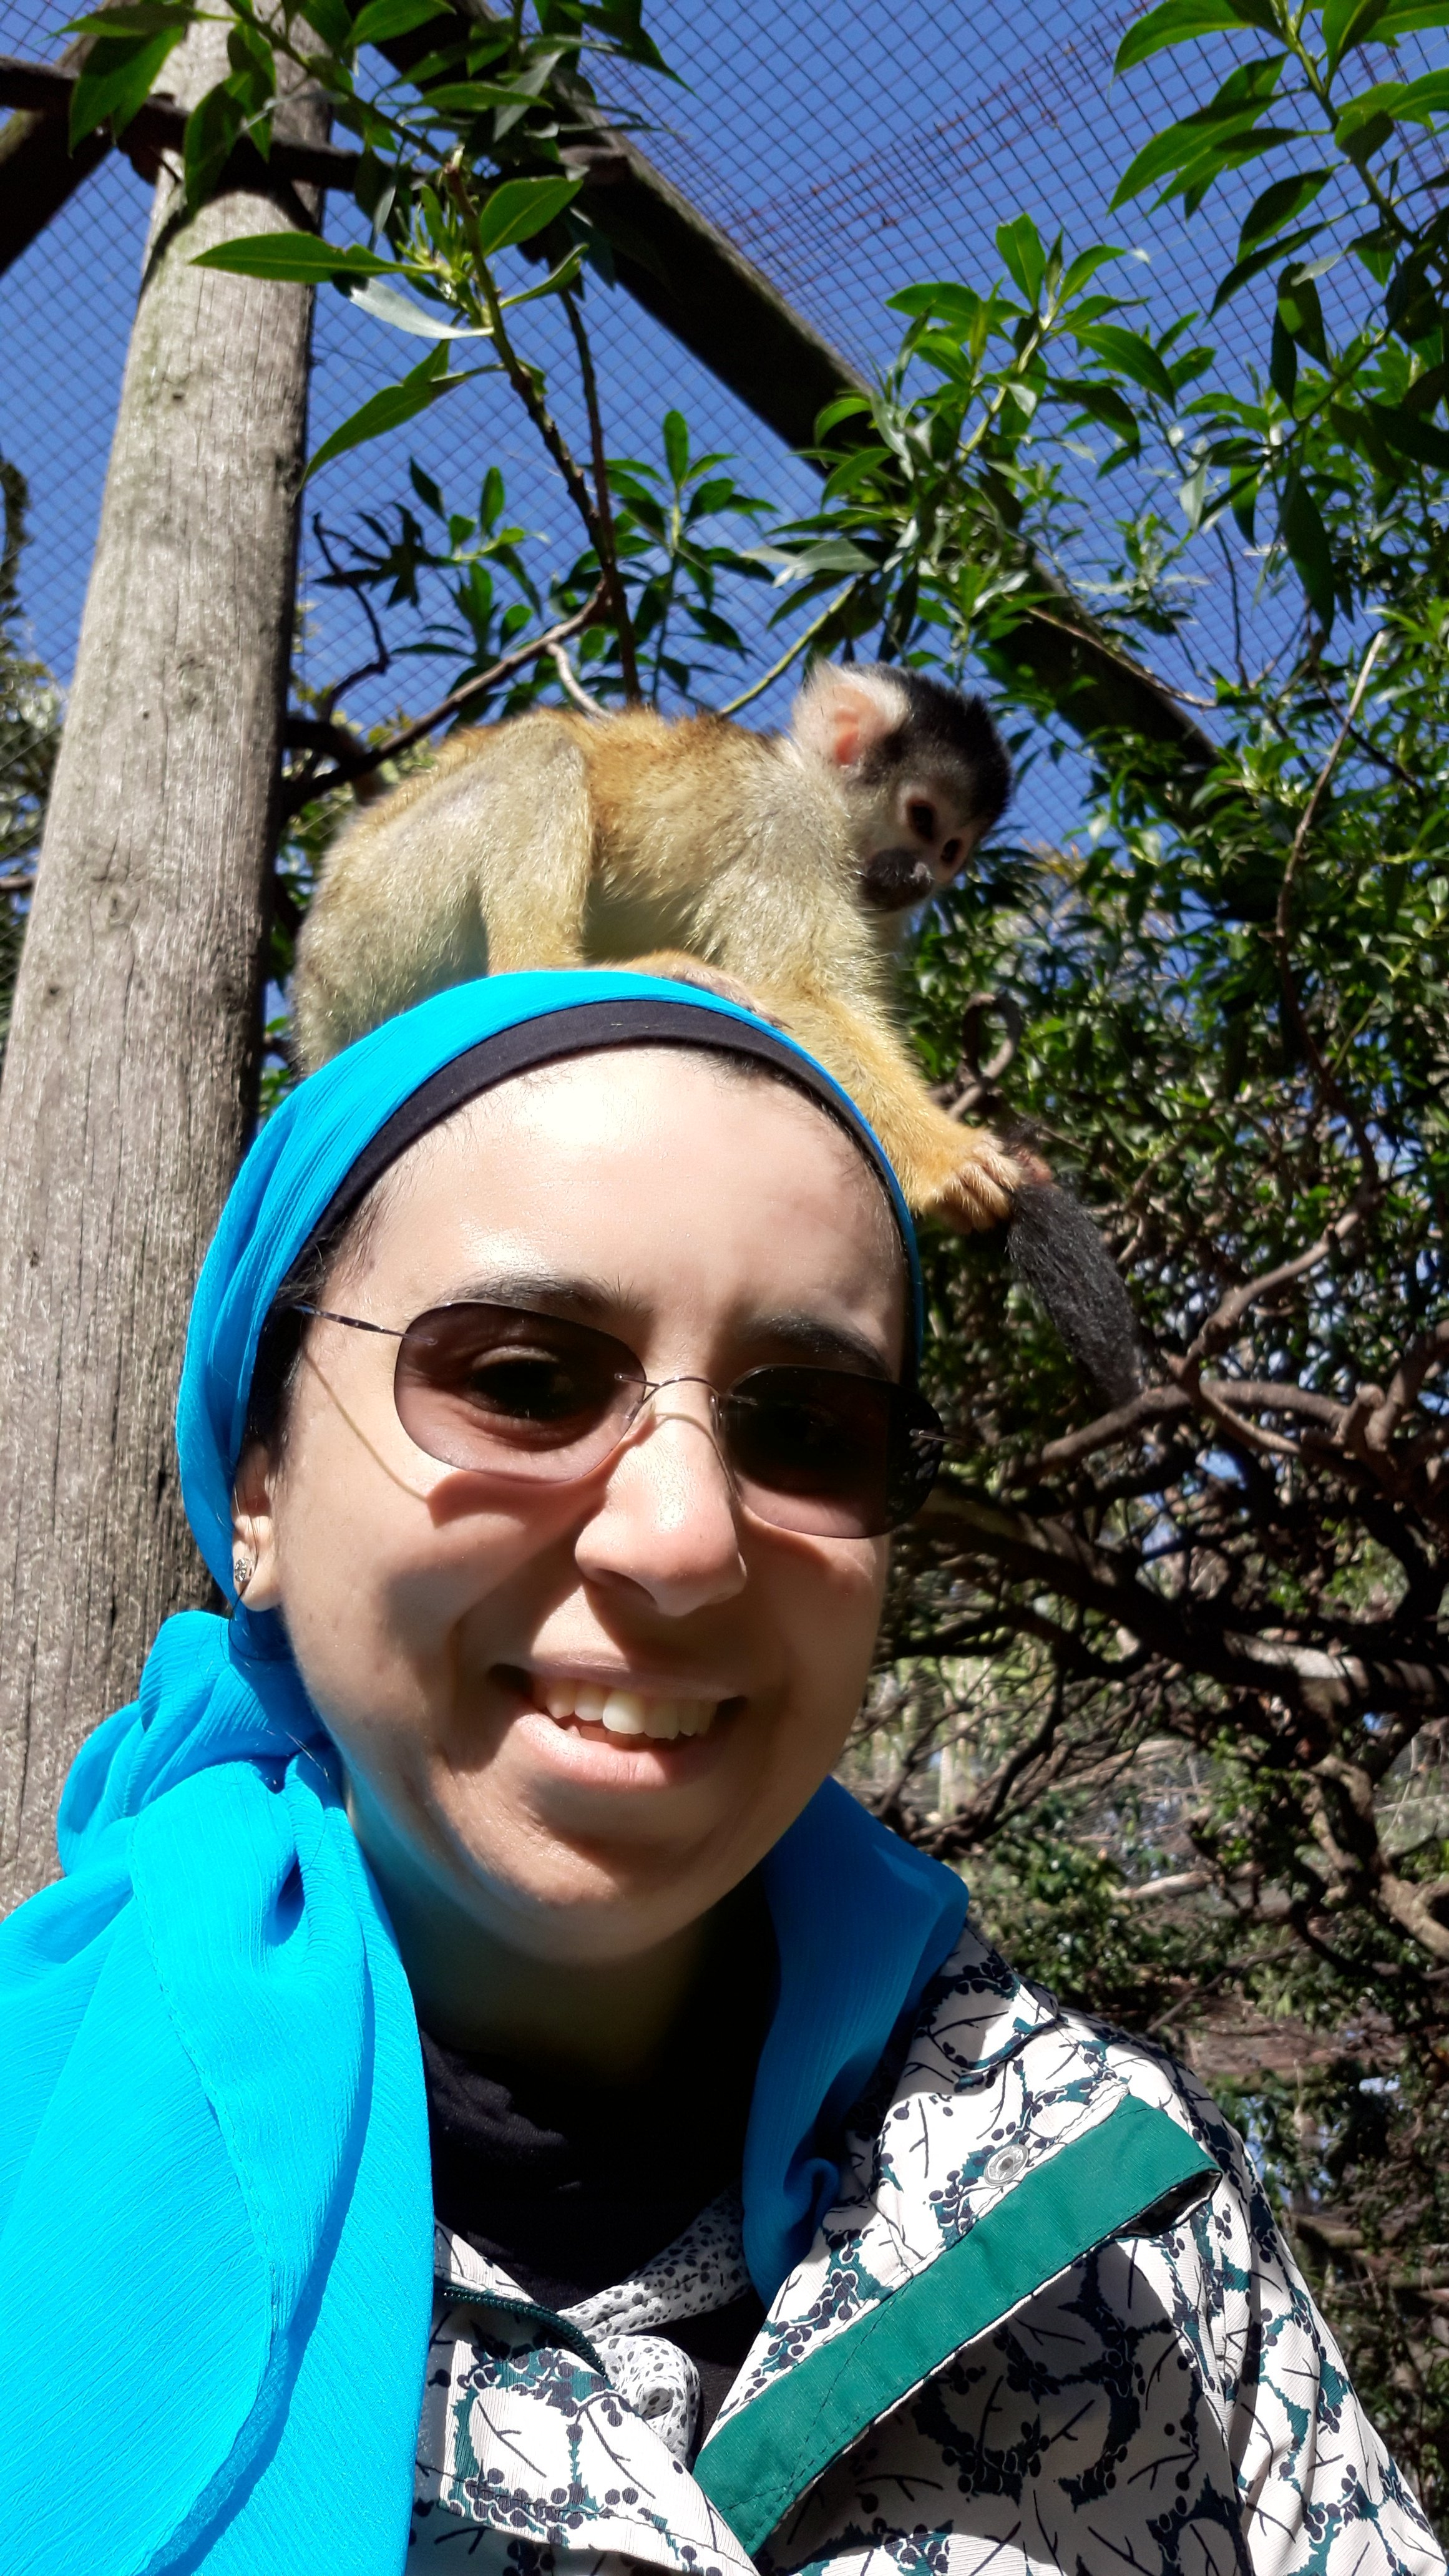 Me with monkey on my head